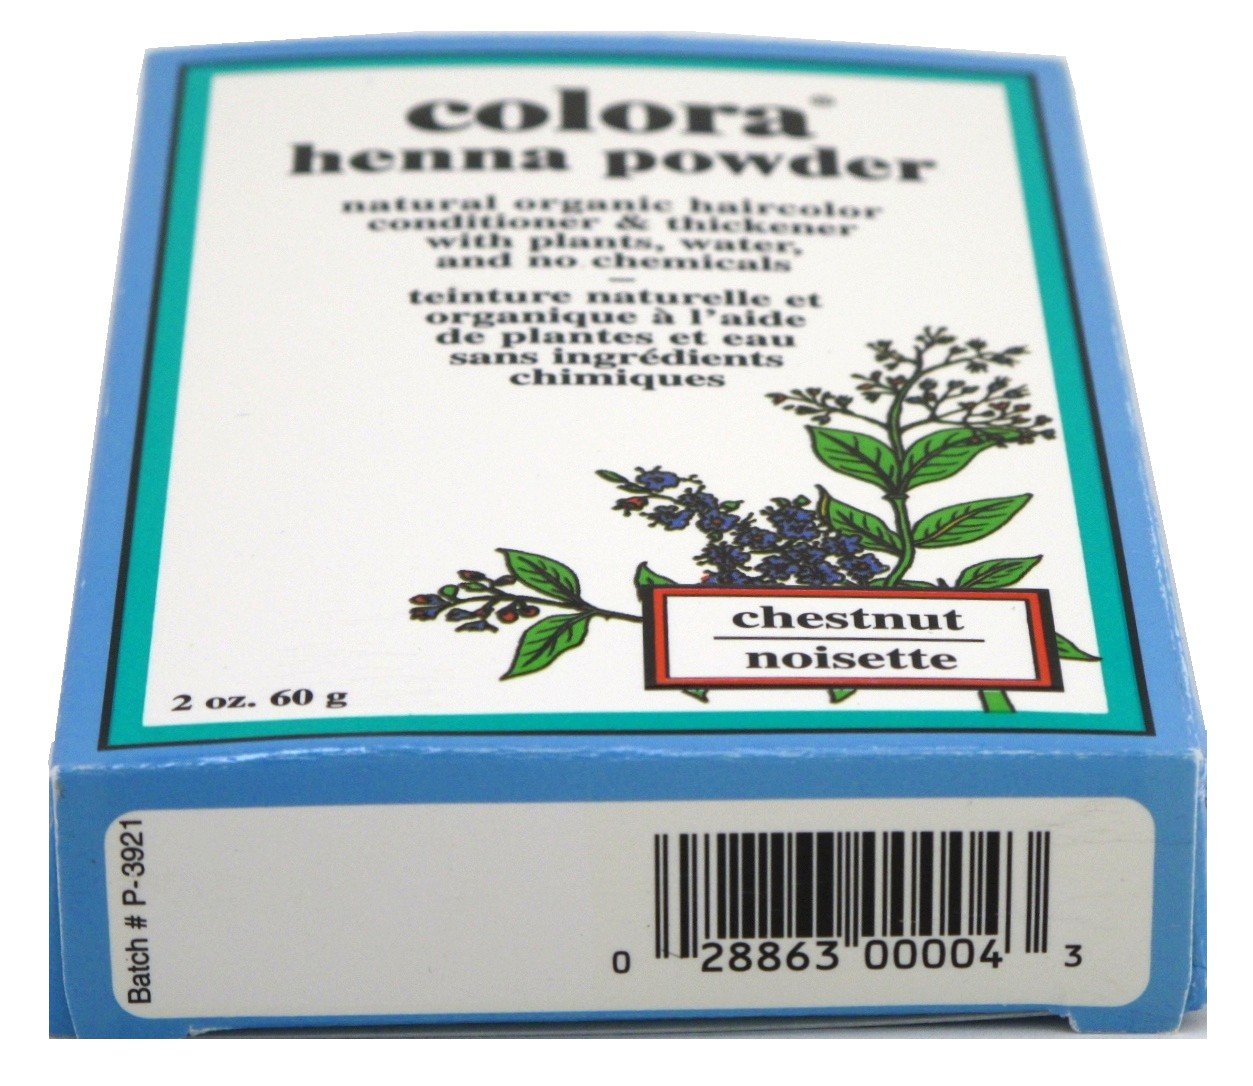 Colora Henna Powder Hair Color Chestnut 2oz (3 Pack) by Colora Henna